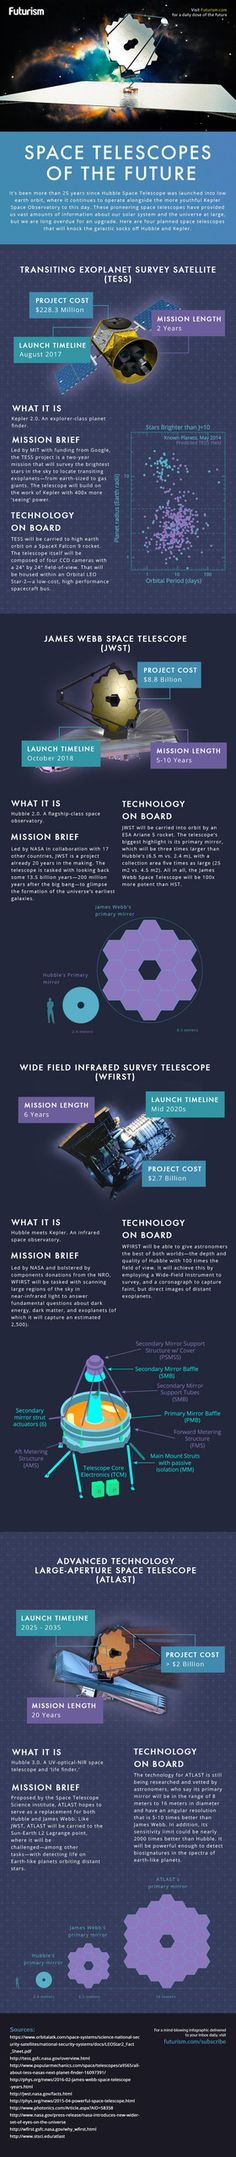 Tomorrow's space telescopes will give us a glimpse of the earliest years of our universe. Come meet them.  http://futurism.com/images/beyond-hubble-the-space-telescopes-tomorrow-infographic/?utm_campaign=coschedule&utm_source=pinterest&utm_medium=Futurism&utm_content=The%20Space%20Telescopes%20of%20Tomorrow%20%5BInfographic%5D